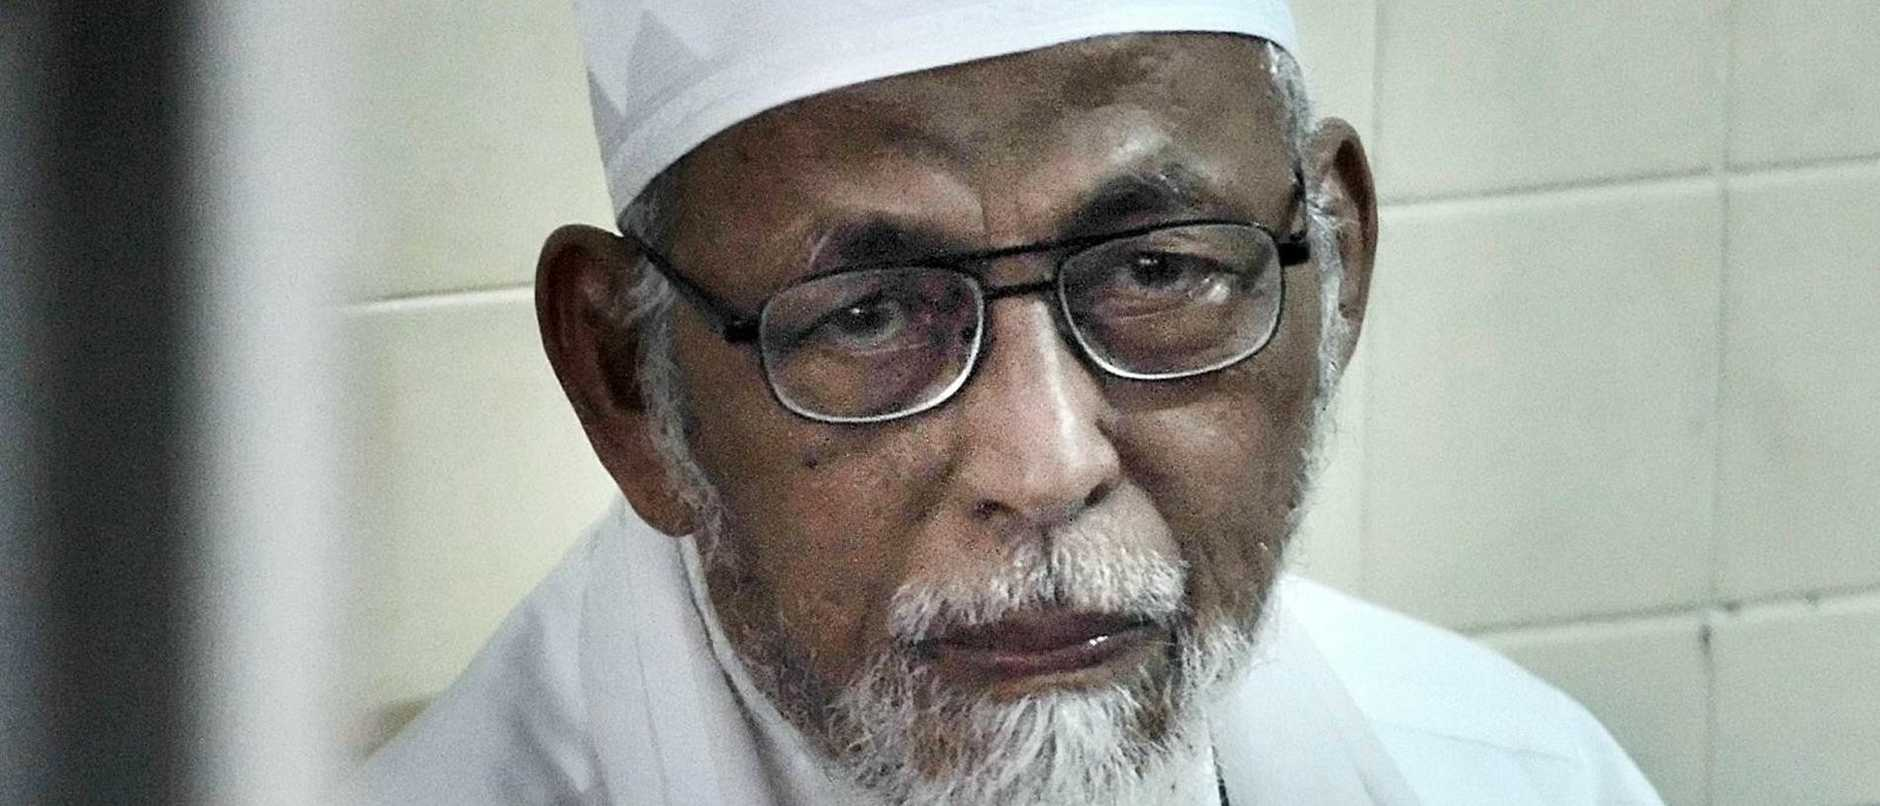 Australians who were affected by the Bali bombing are angry after radical Islamic terrorist Abu Bakar Bashir was released from prison today.